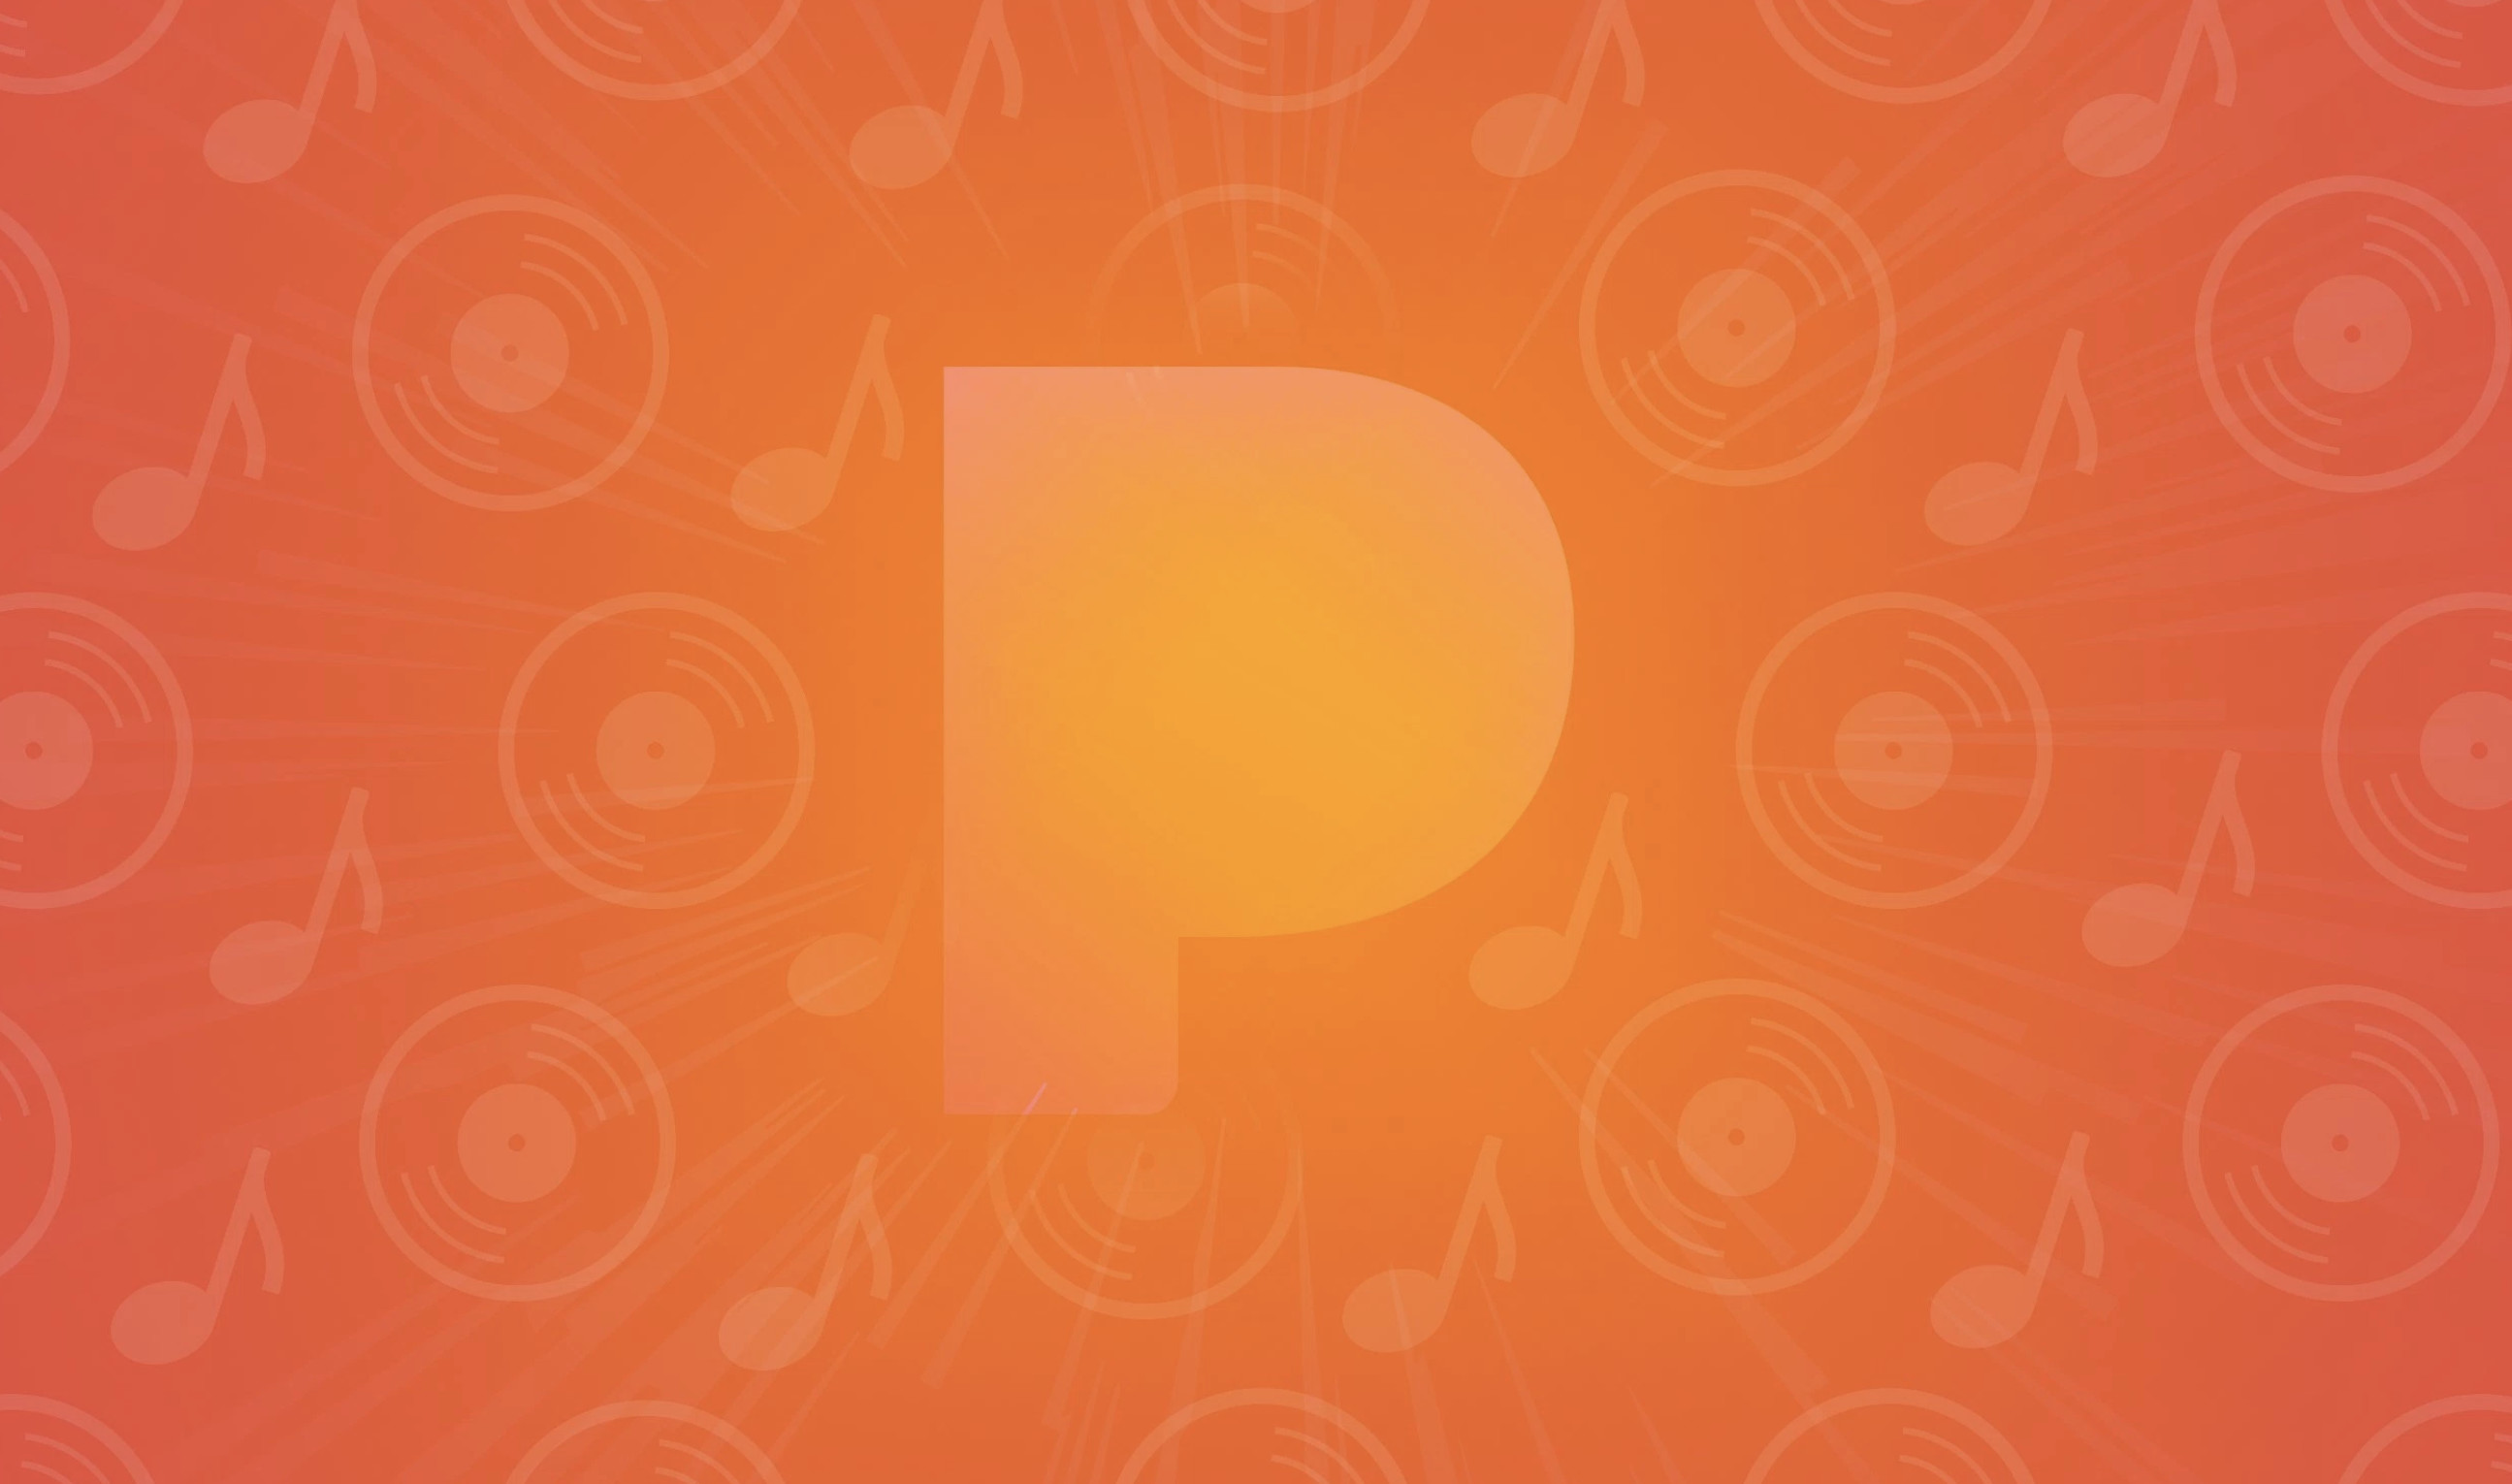 Pandora Extends On-Demand Listening to 'Freemium' Listeners With Video Ads